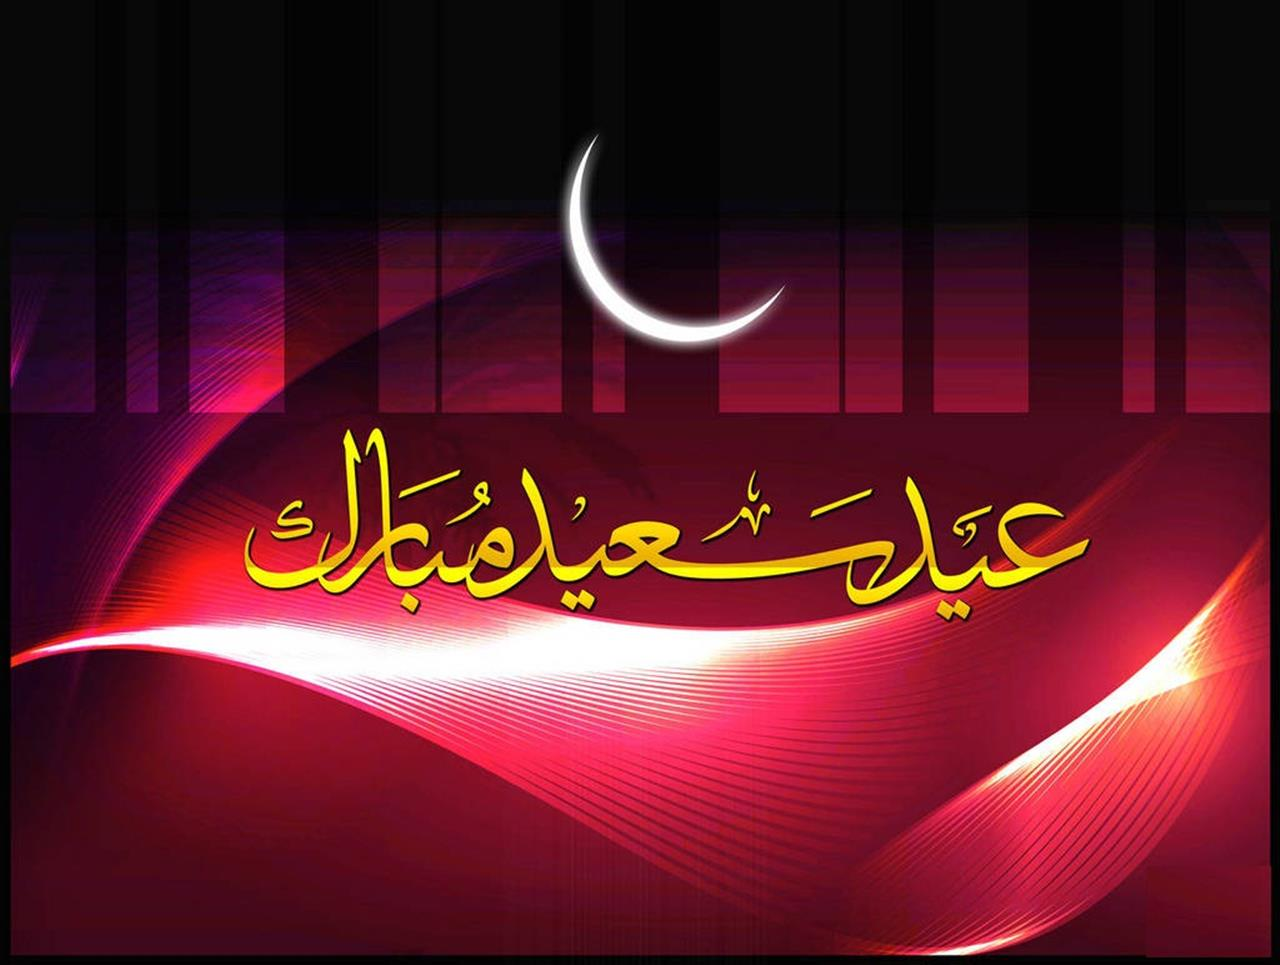 Beautiful Quotes And Inspirational Wallpapers Hd Happy Eid Ul Adha Wallpapers New Greeting Cards 2014